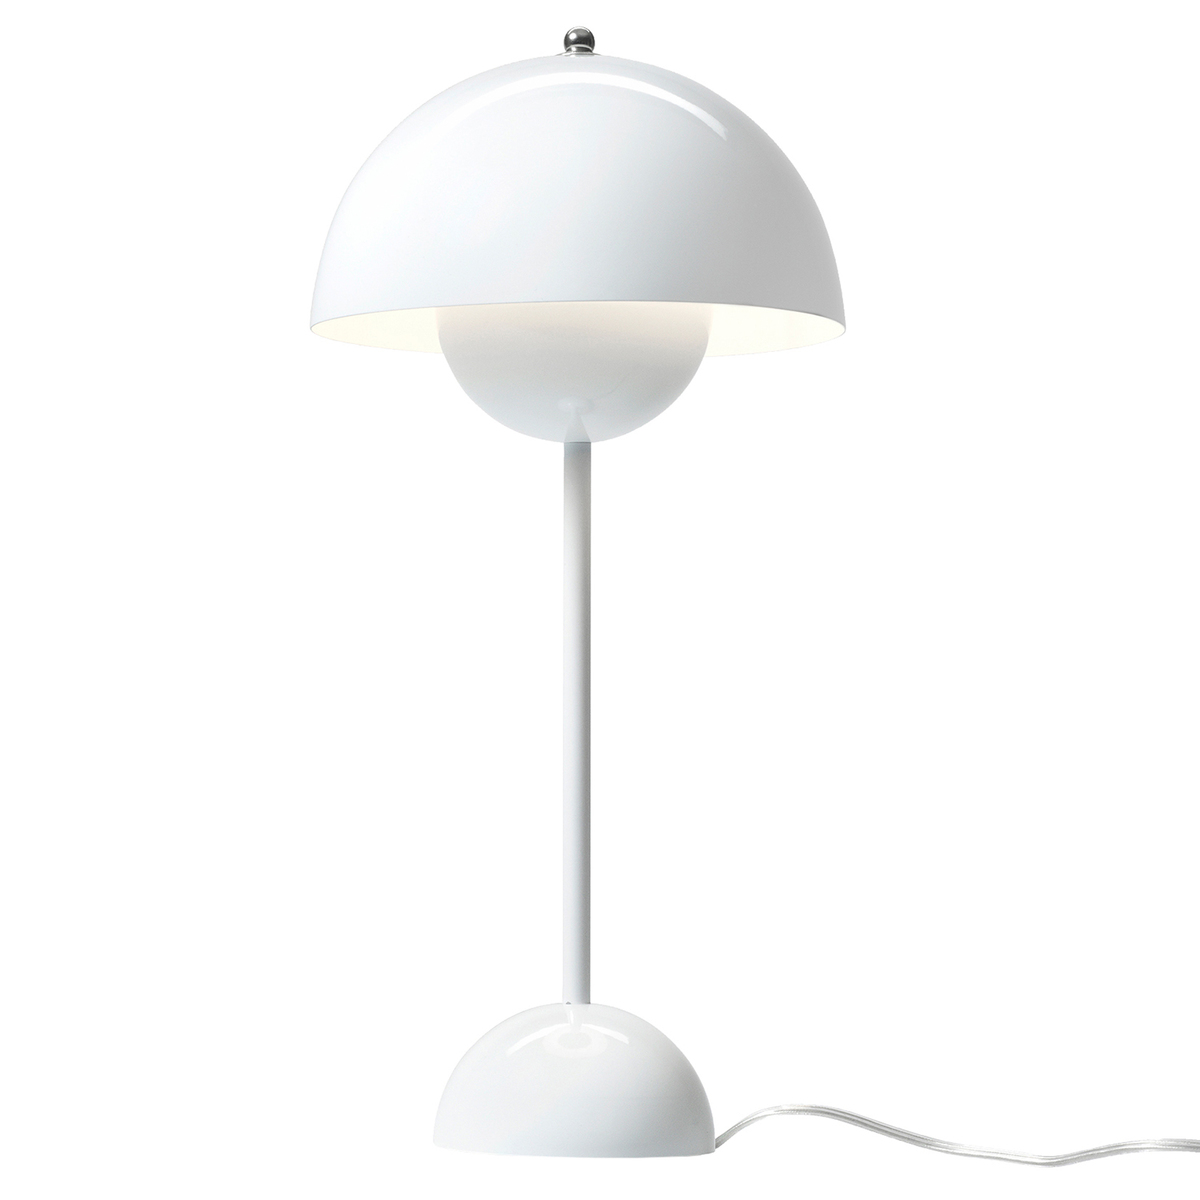 &Tradition Flowerpot VP3 table lamp, white from &Tradition